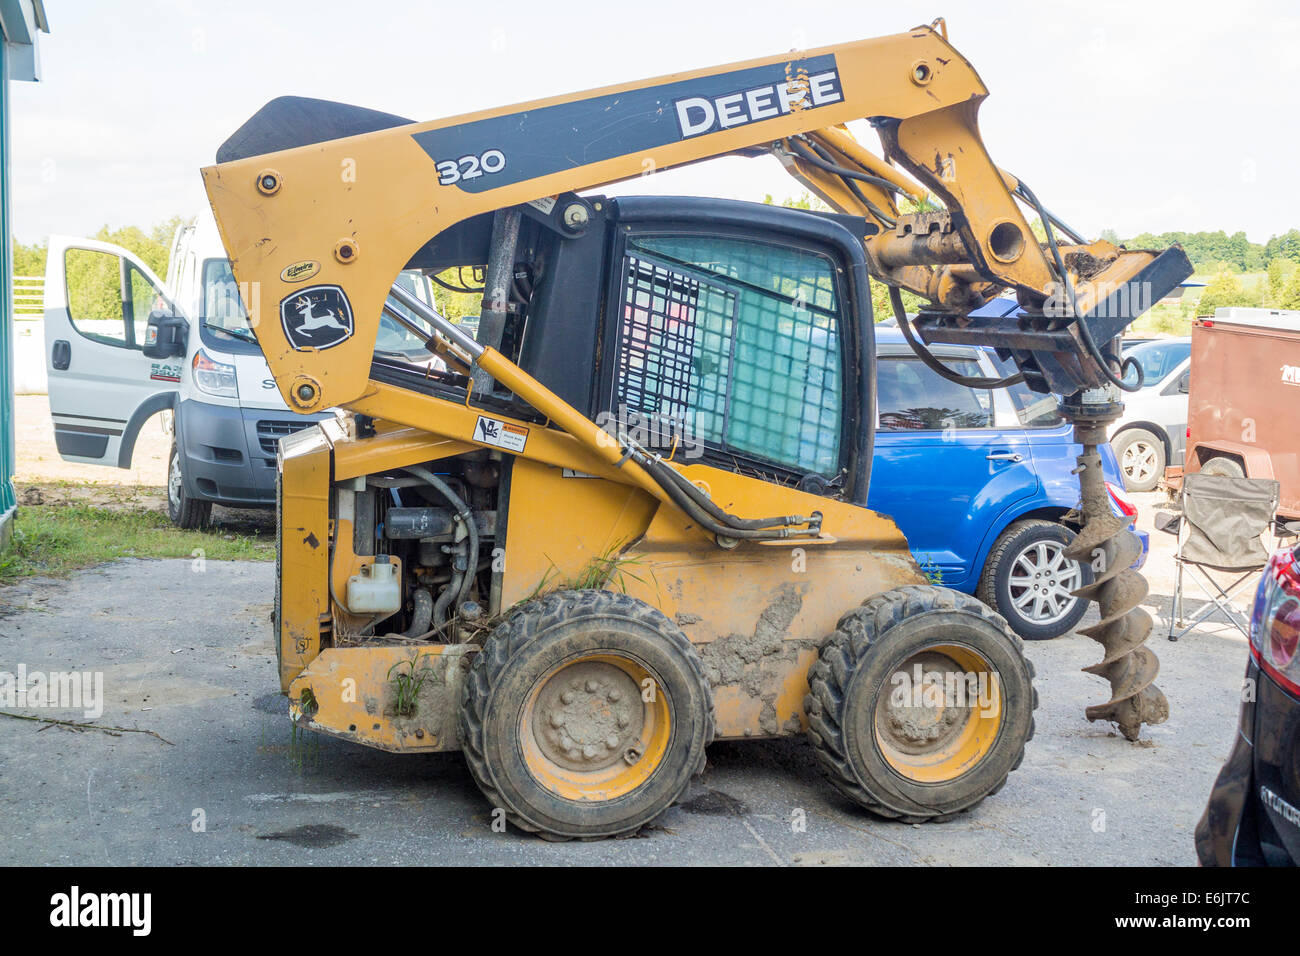 Johm Deere skid steer with attached auger. - Stock Image